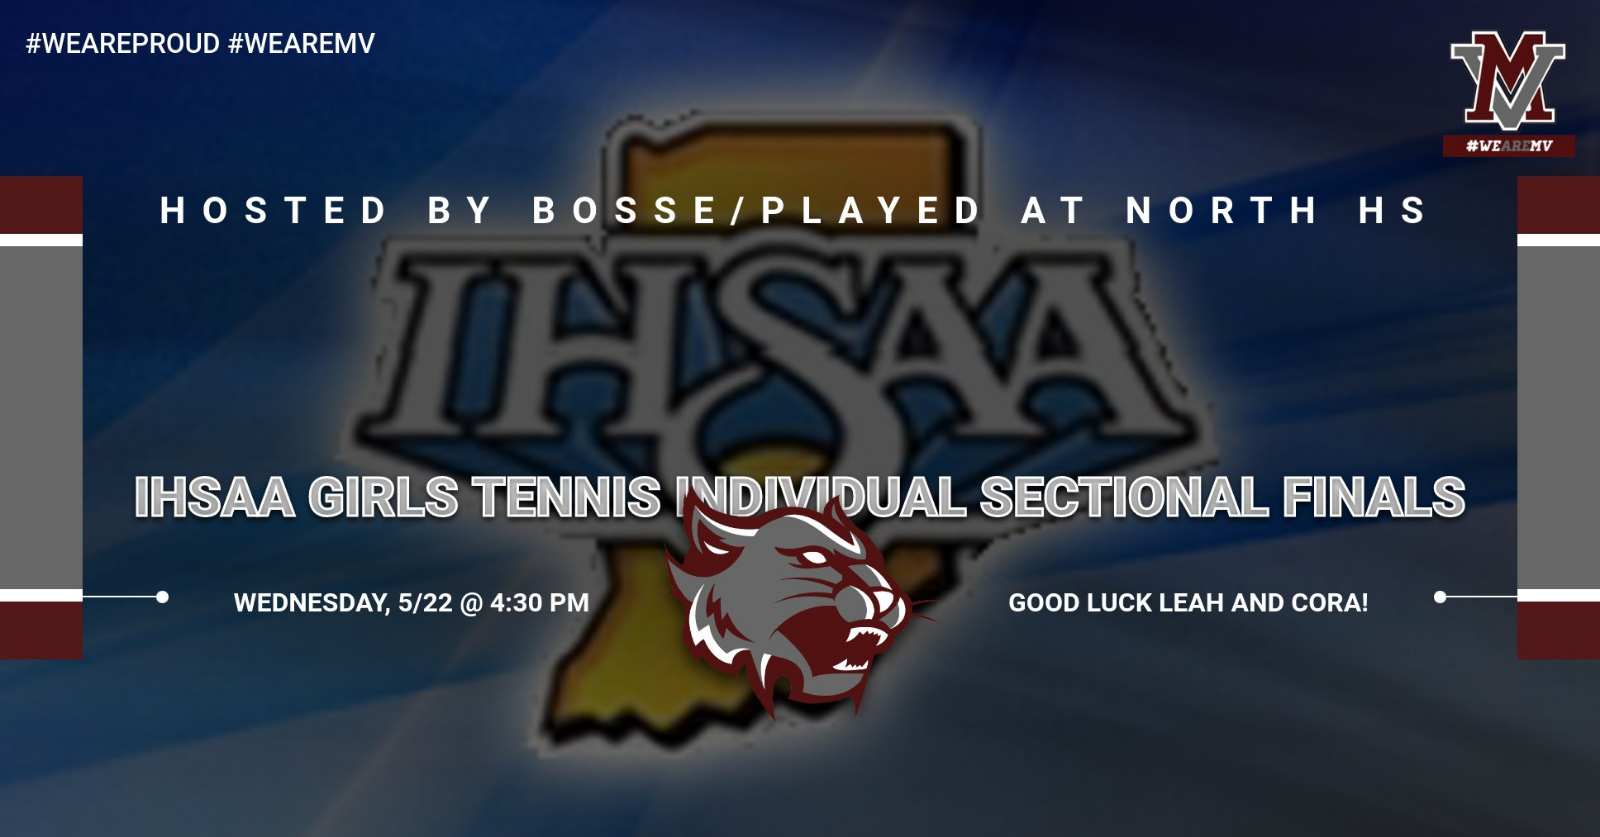 IHSAA Individual Tennis Tournament Sectional Finals!